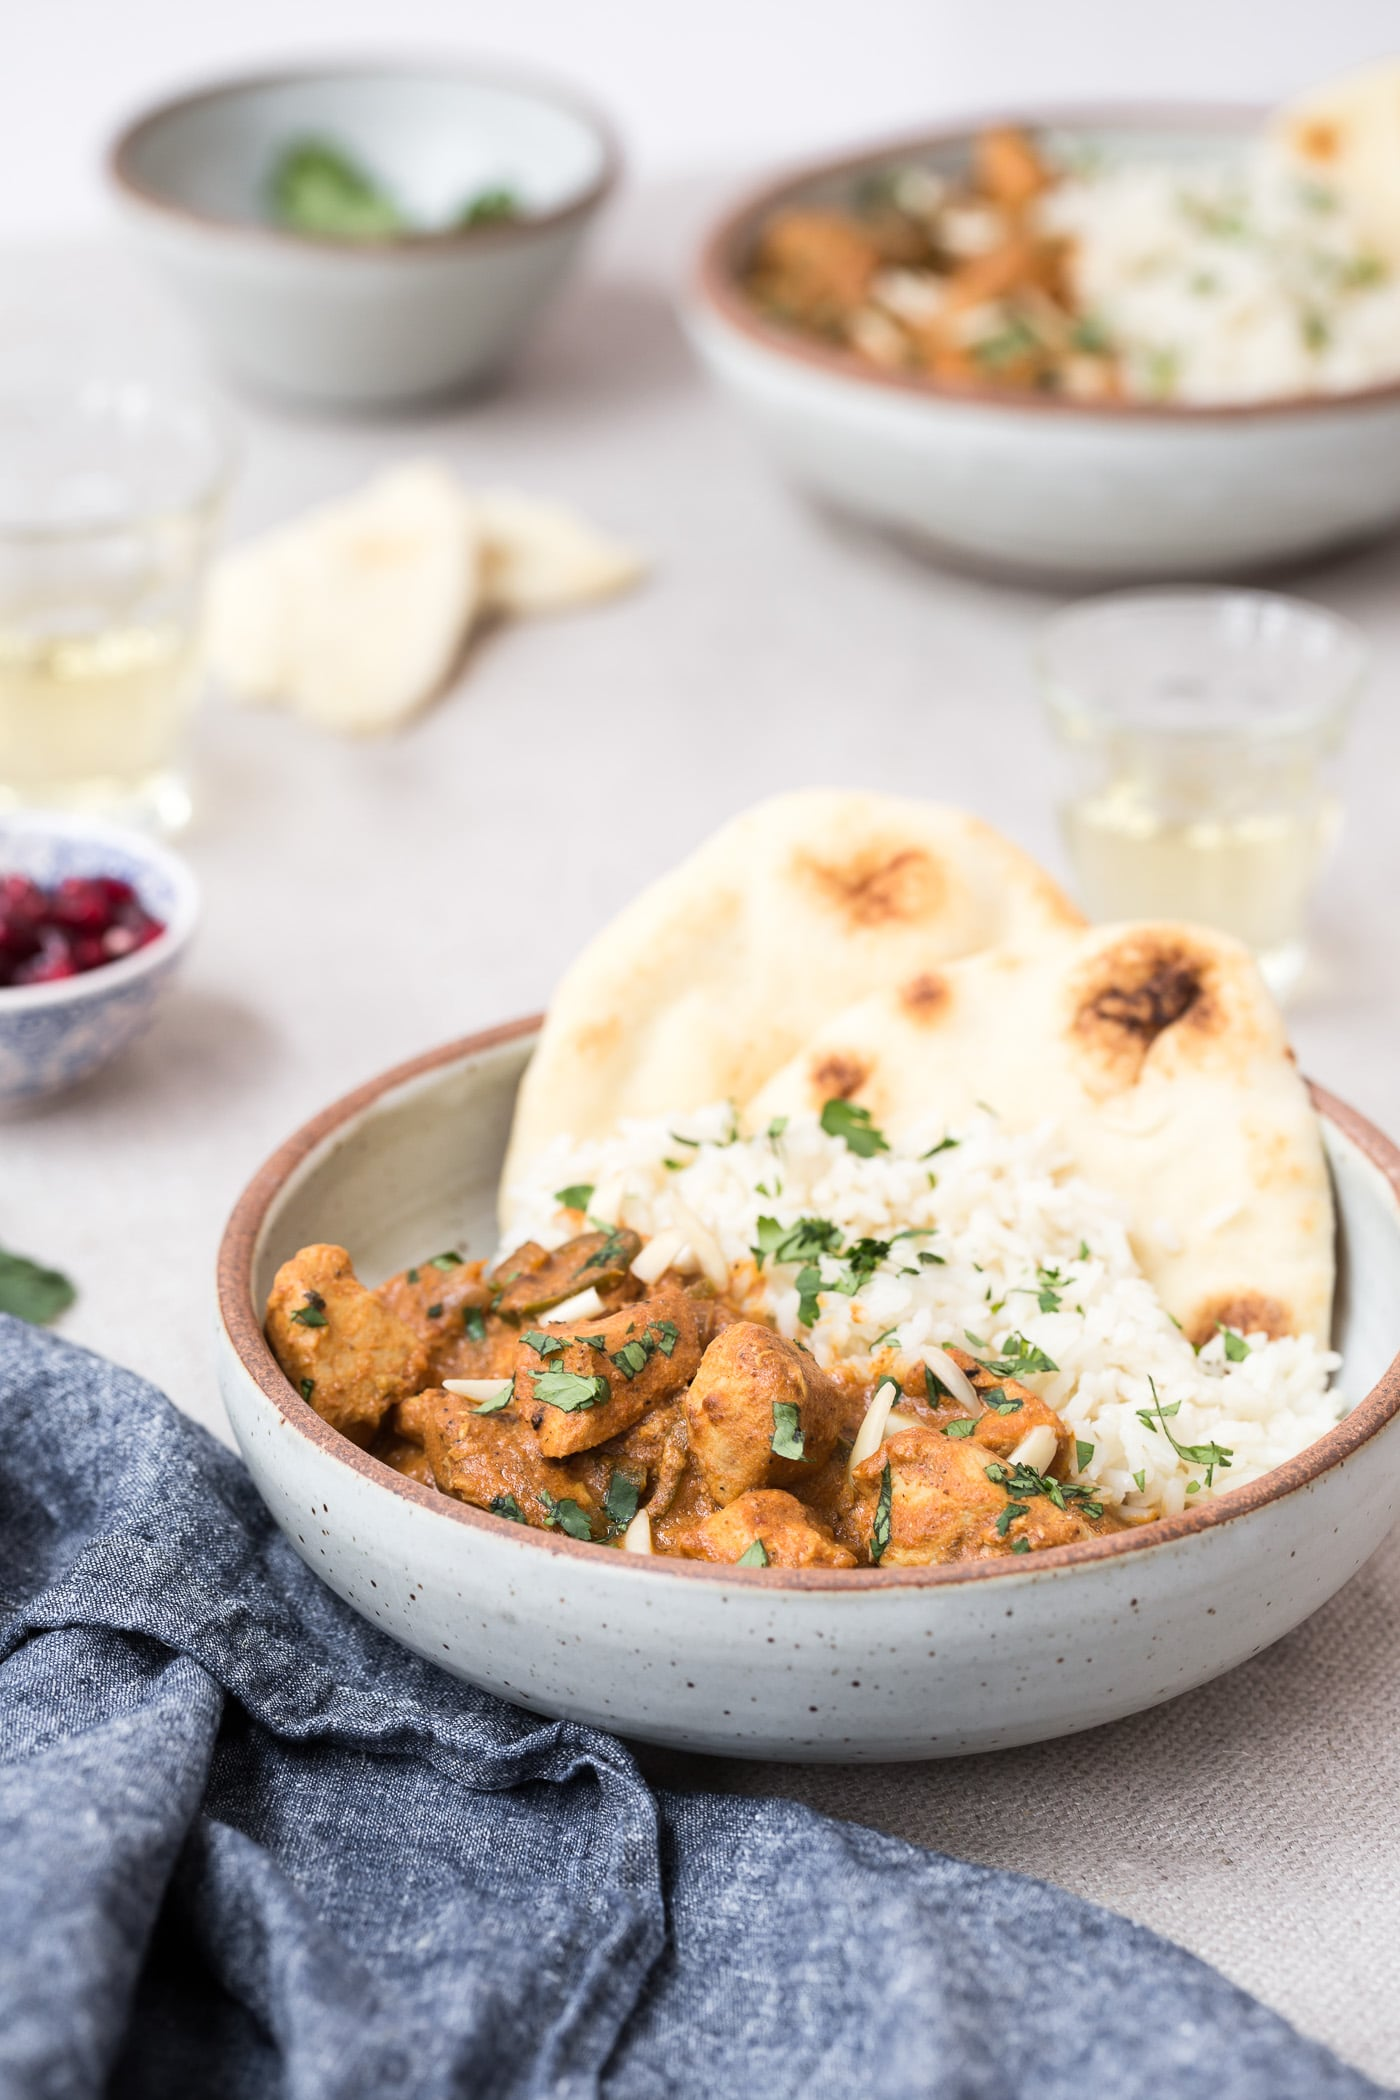 A bowl of slow cooker butter chicken served with rice and naan bread.